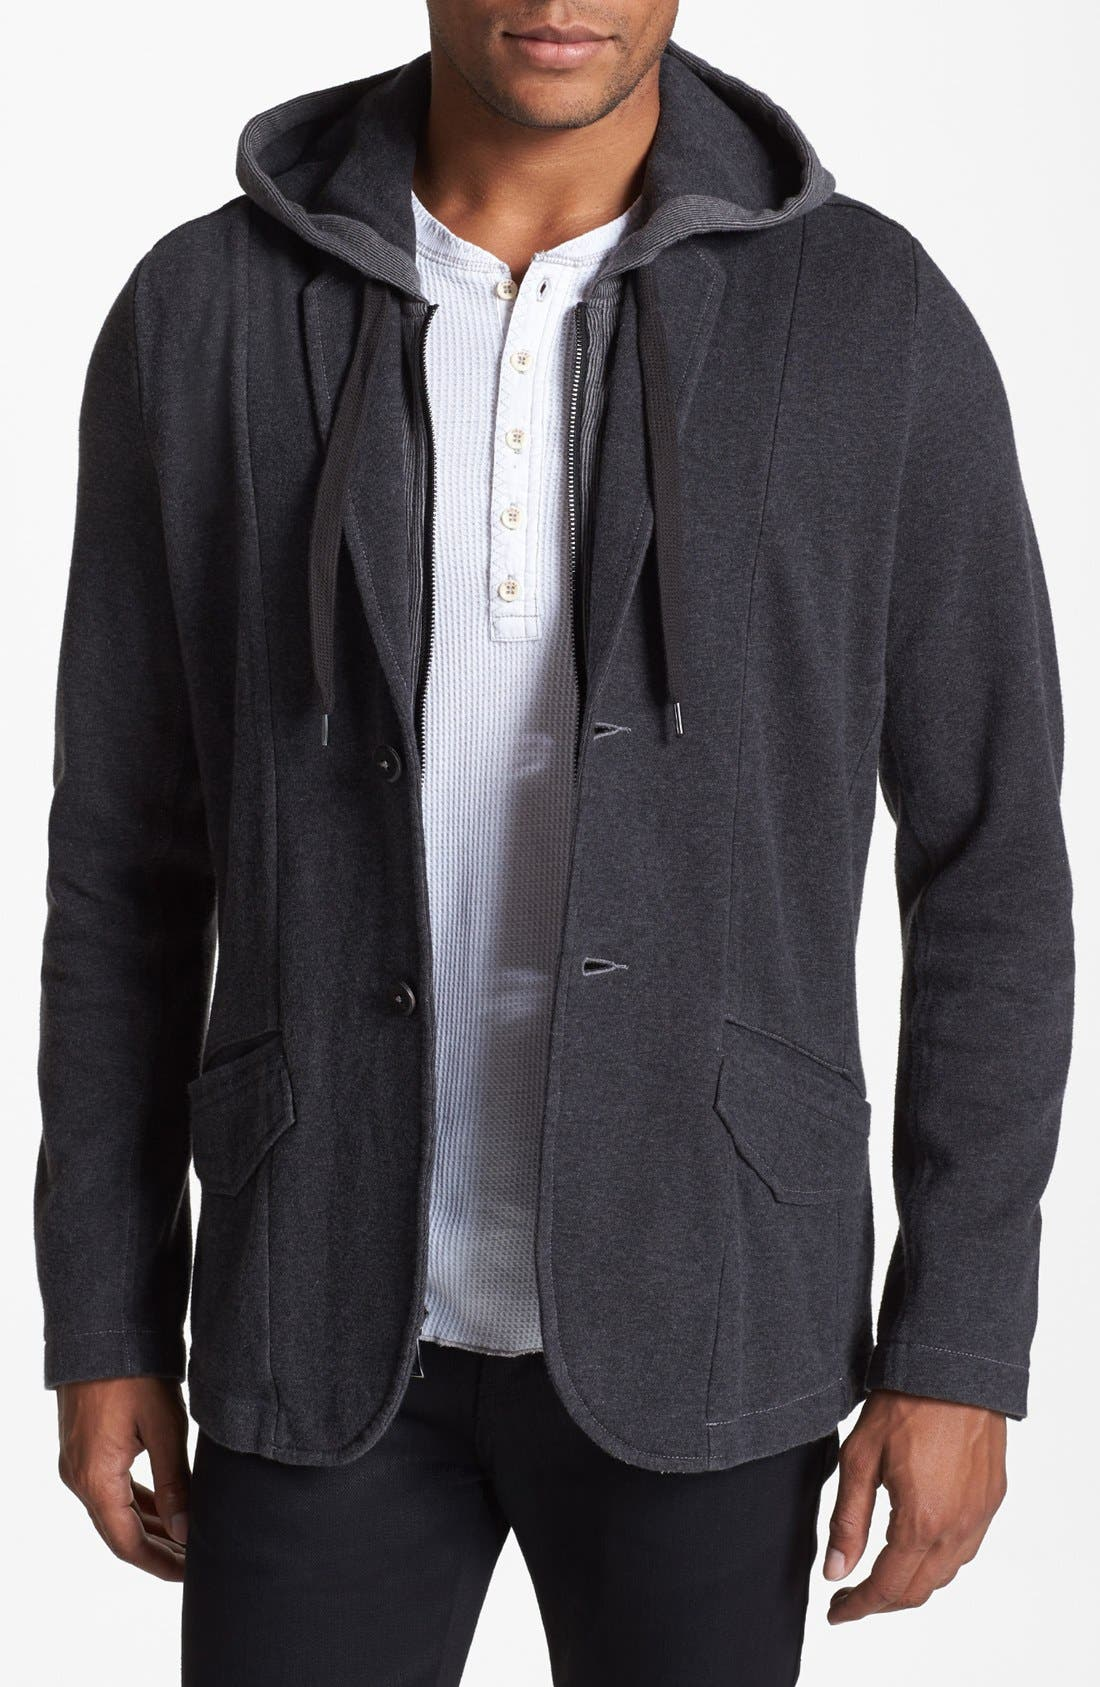 Alternate Image 1 Selected - Howe 'Four on the Floor' Jersey Sportcoat with Removable Hood